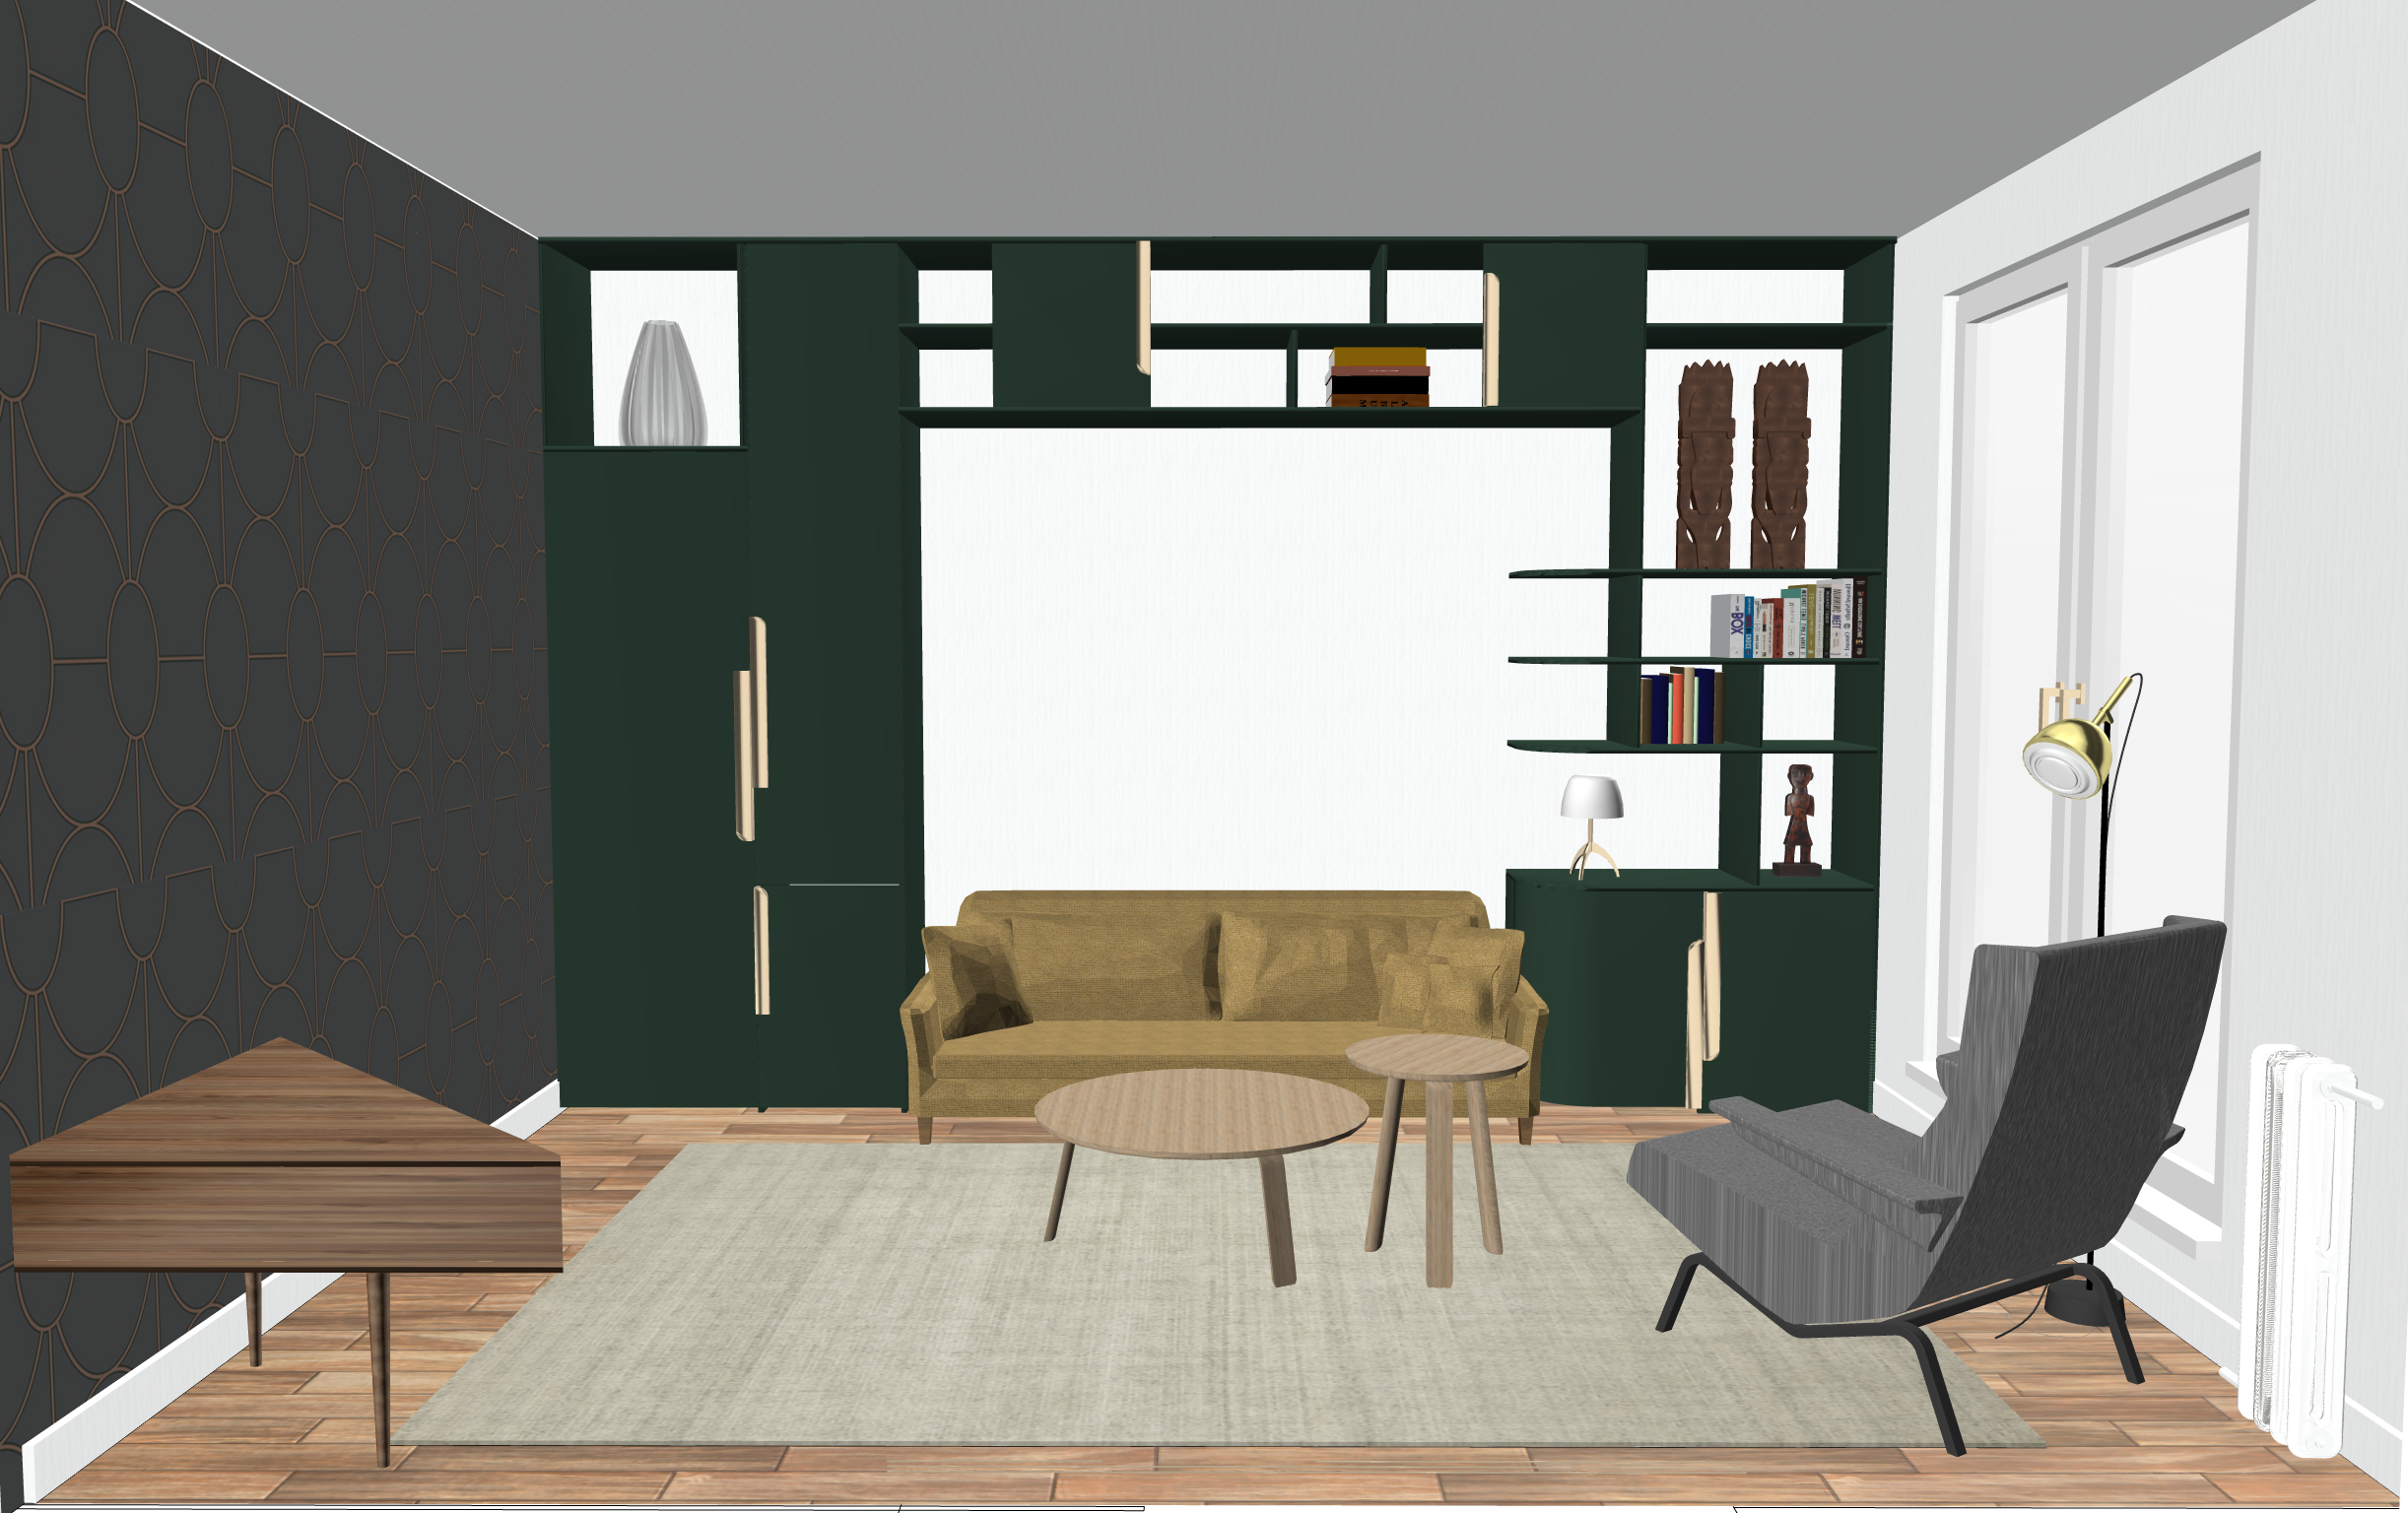 maison_bou_2019_neuilly_3d_14.png